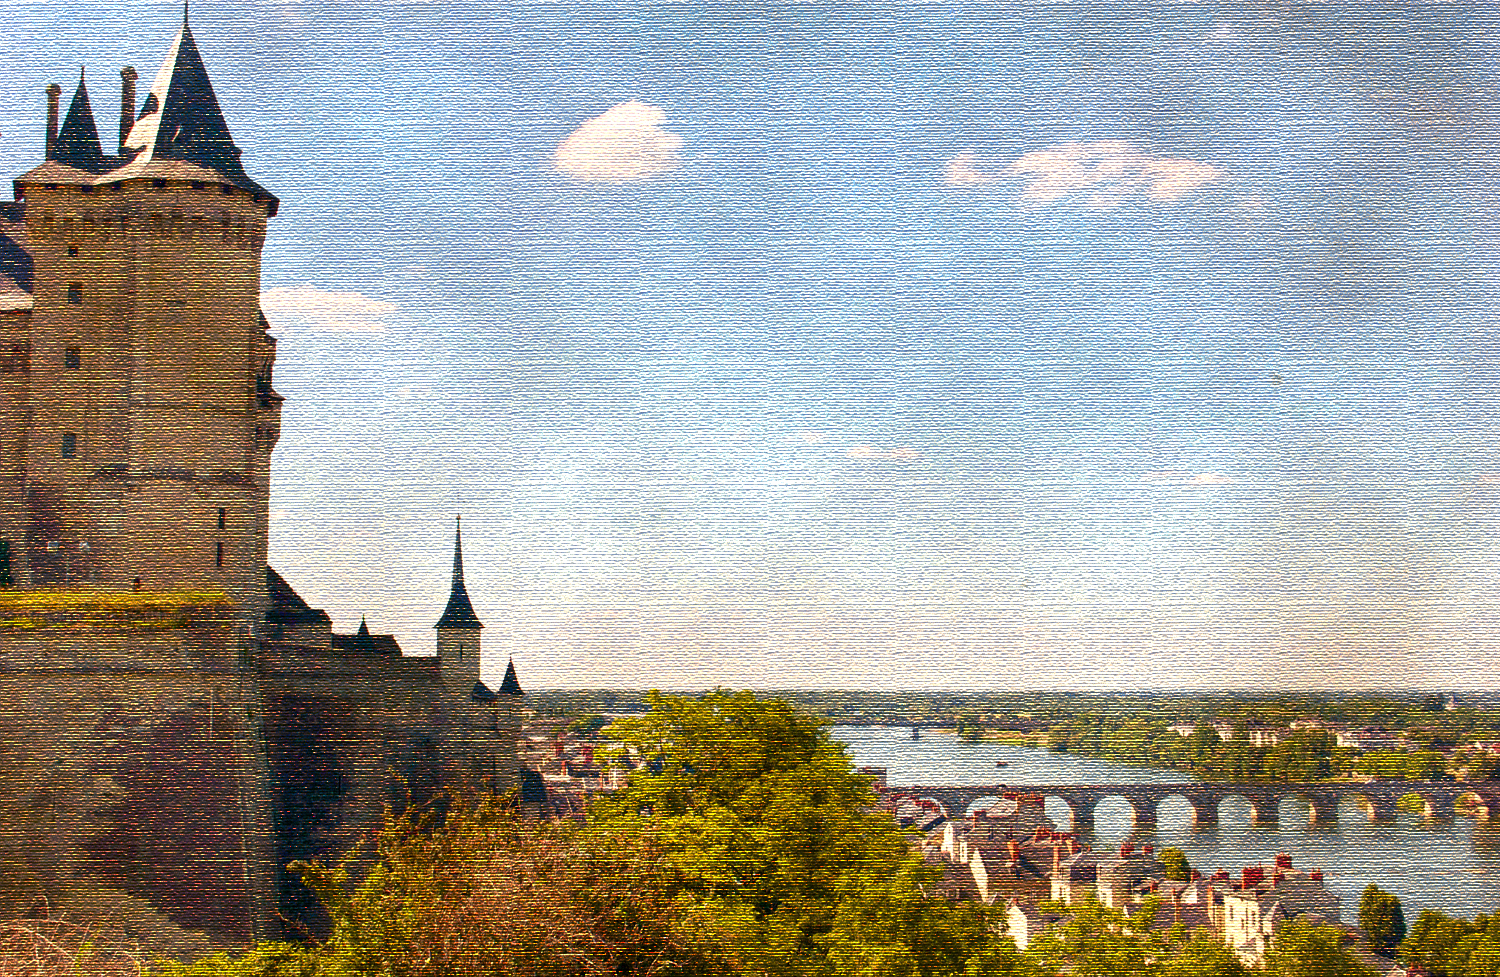 View of the Loire River